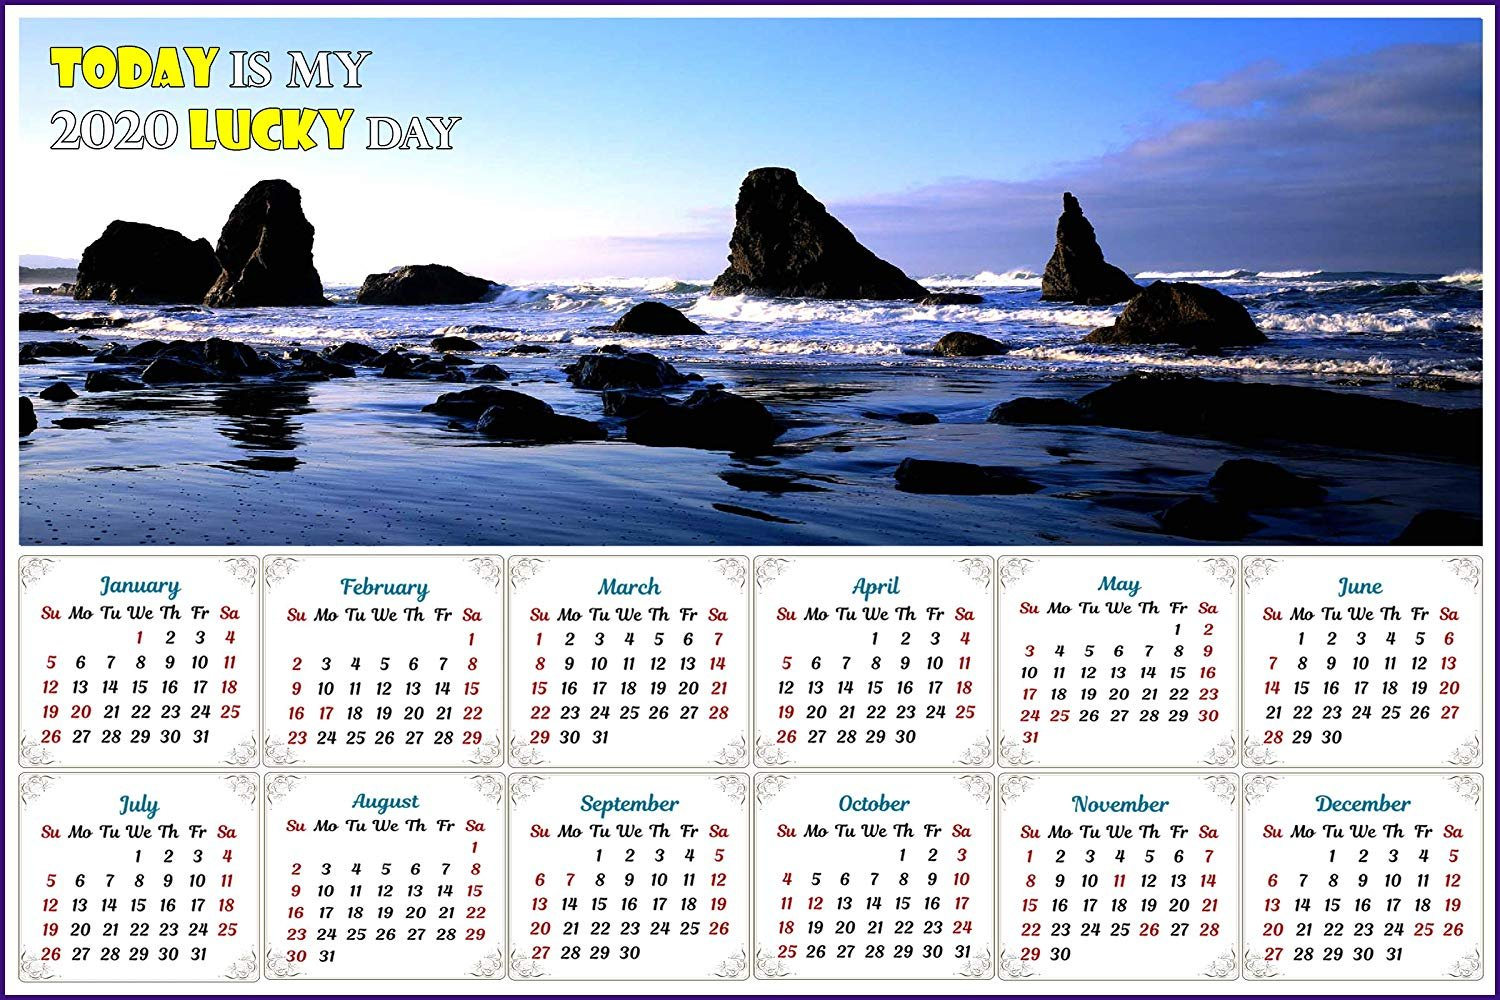 2020 Magnetic Calendar - Calendar Magnets - Today is my Lucky Day (Sea Stacks near Bandon)